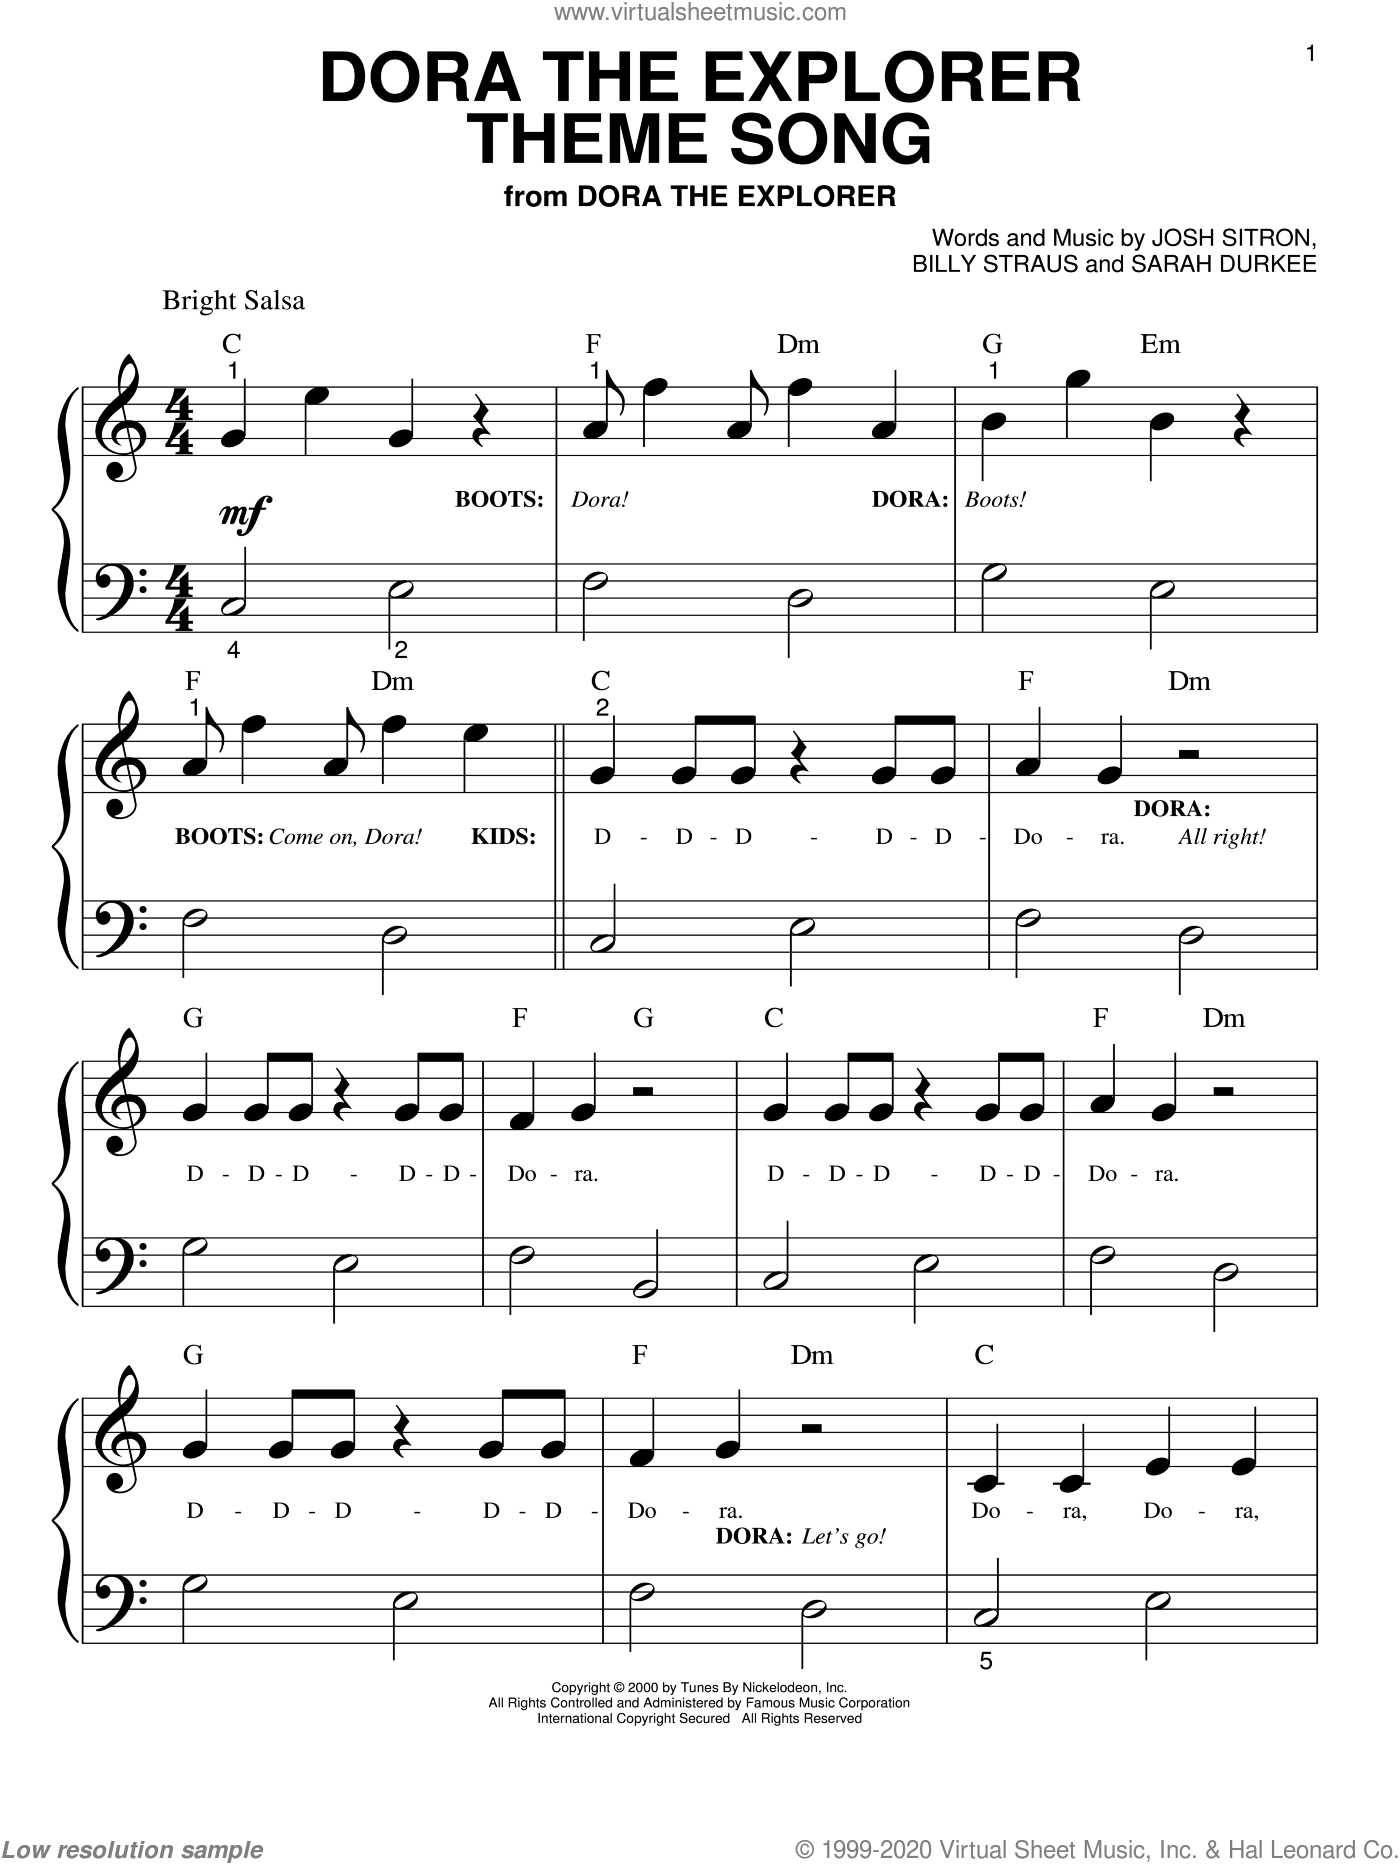 Dora The Explorer Theme Song sheet music for piano solo (big note book) by Sarah Durkee